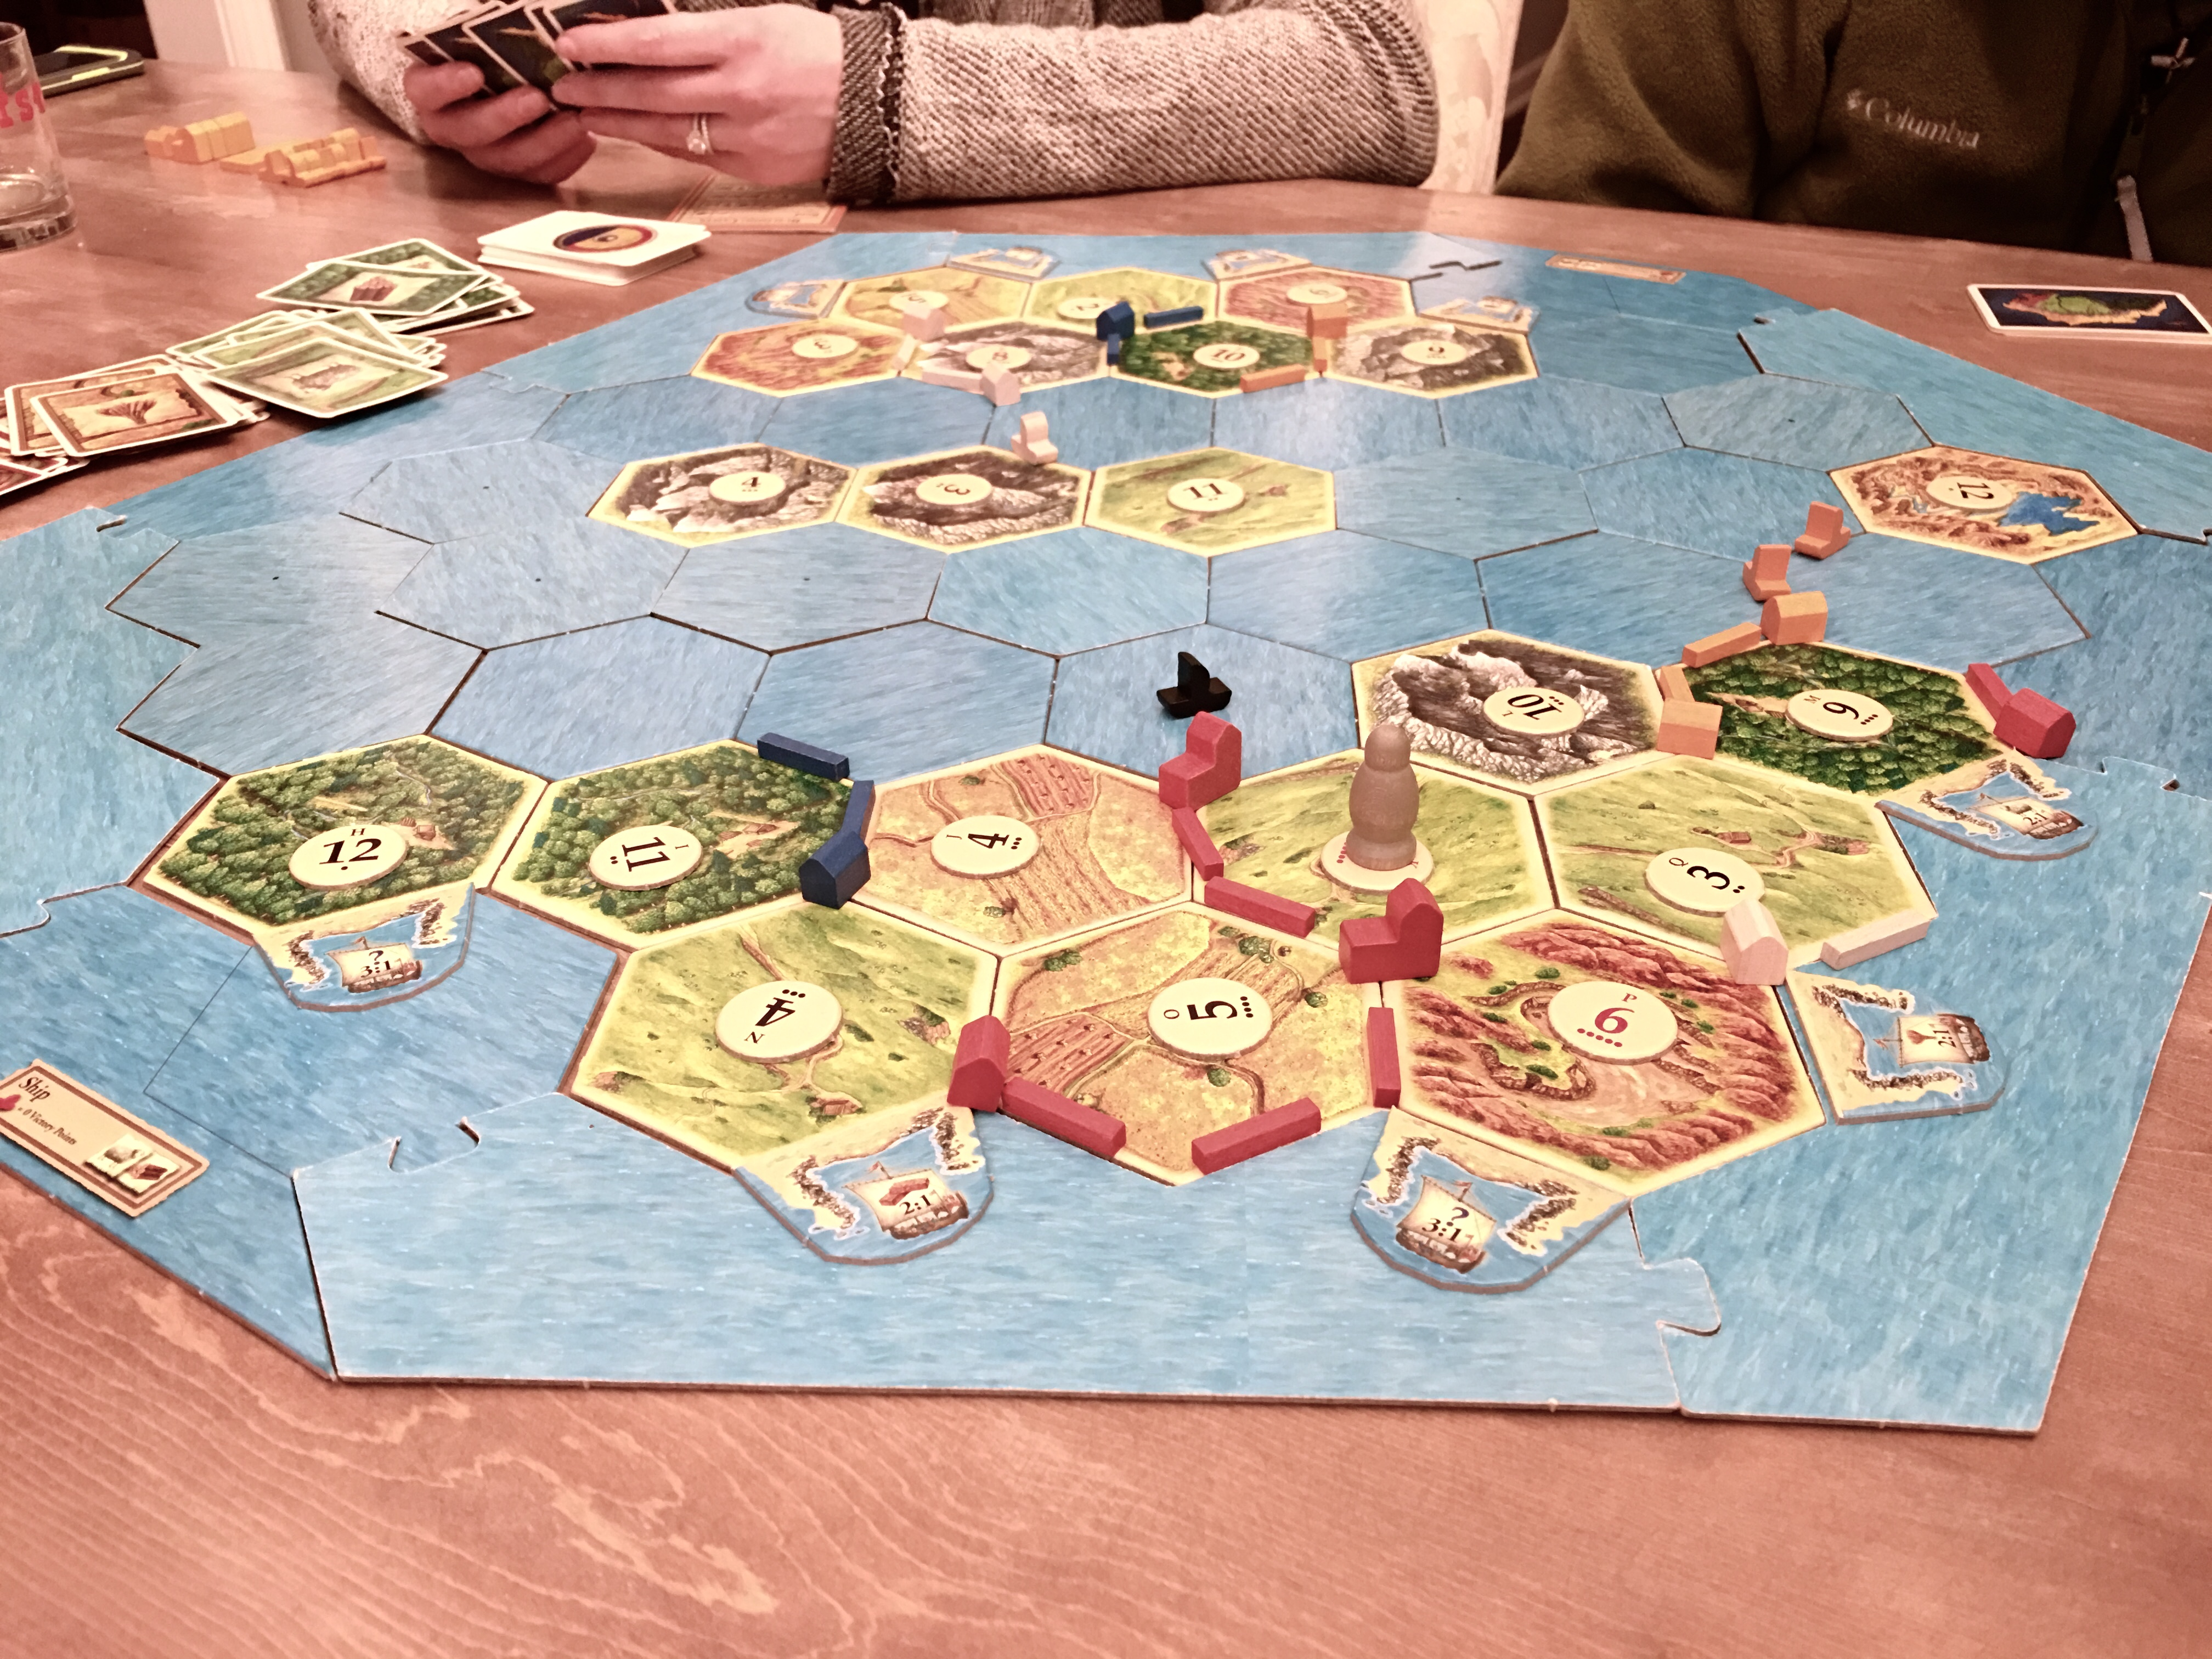 close up photo of playing settlers of catan on farmhouse table